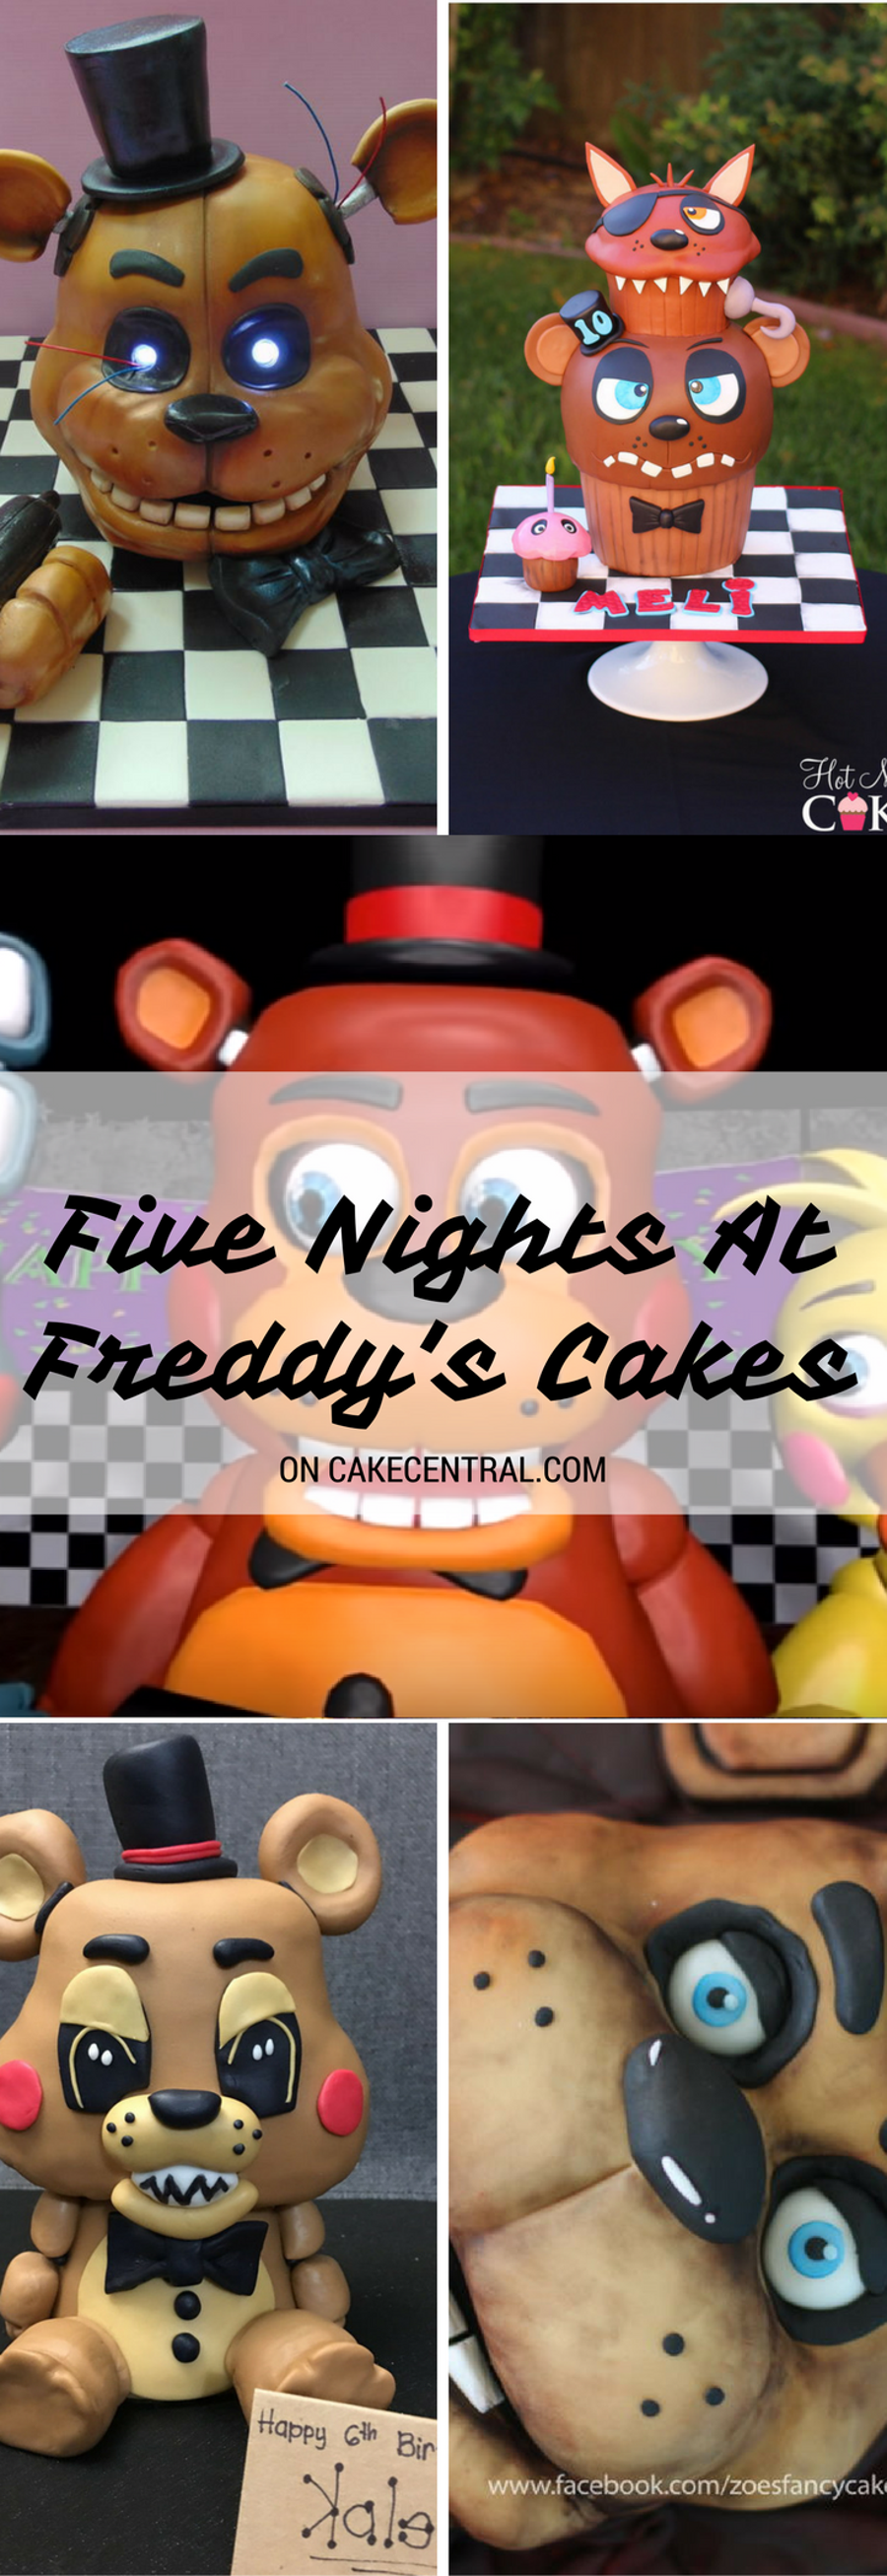 Five Nights At Freddy S Bedroom Decor: Top Five Nights At Freddy's Cakes